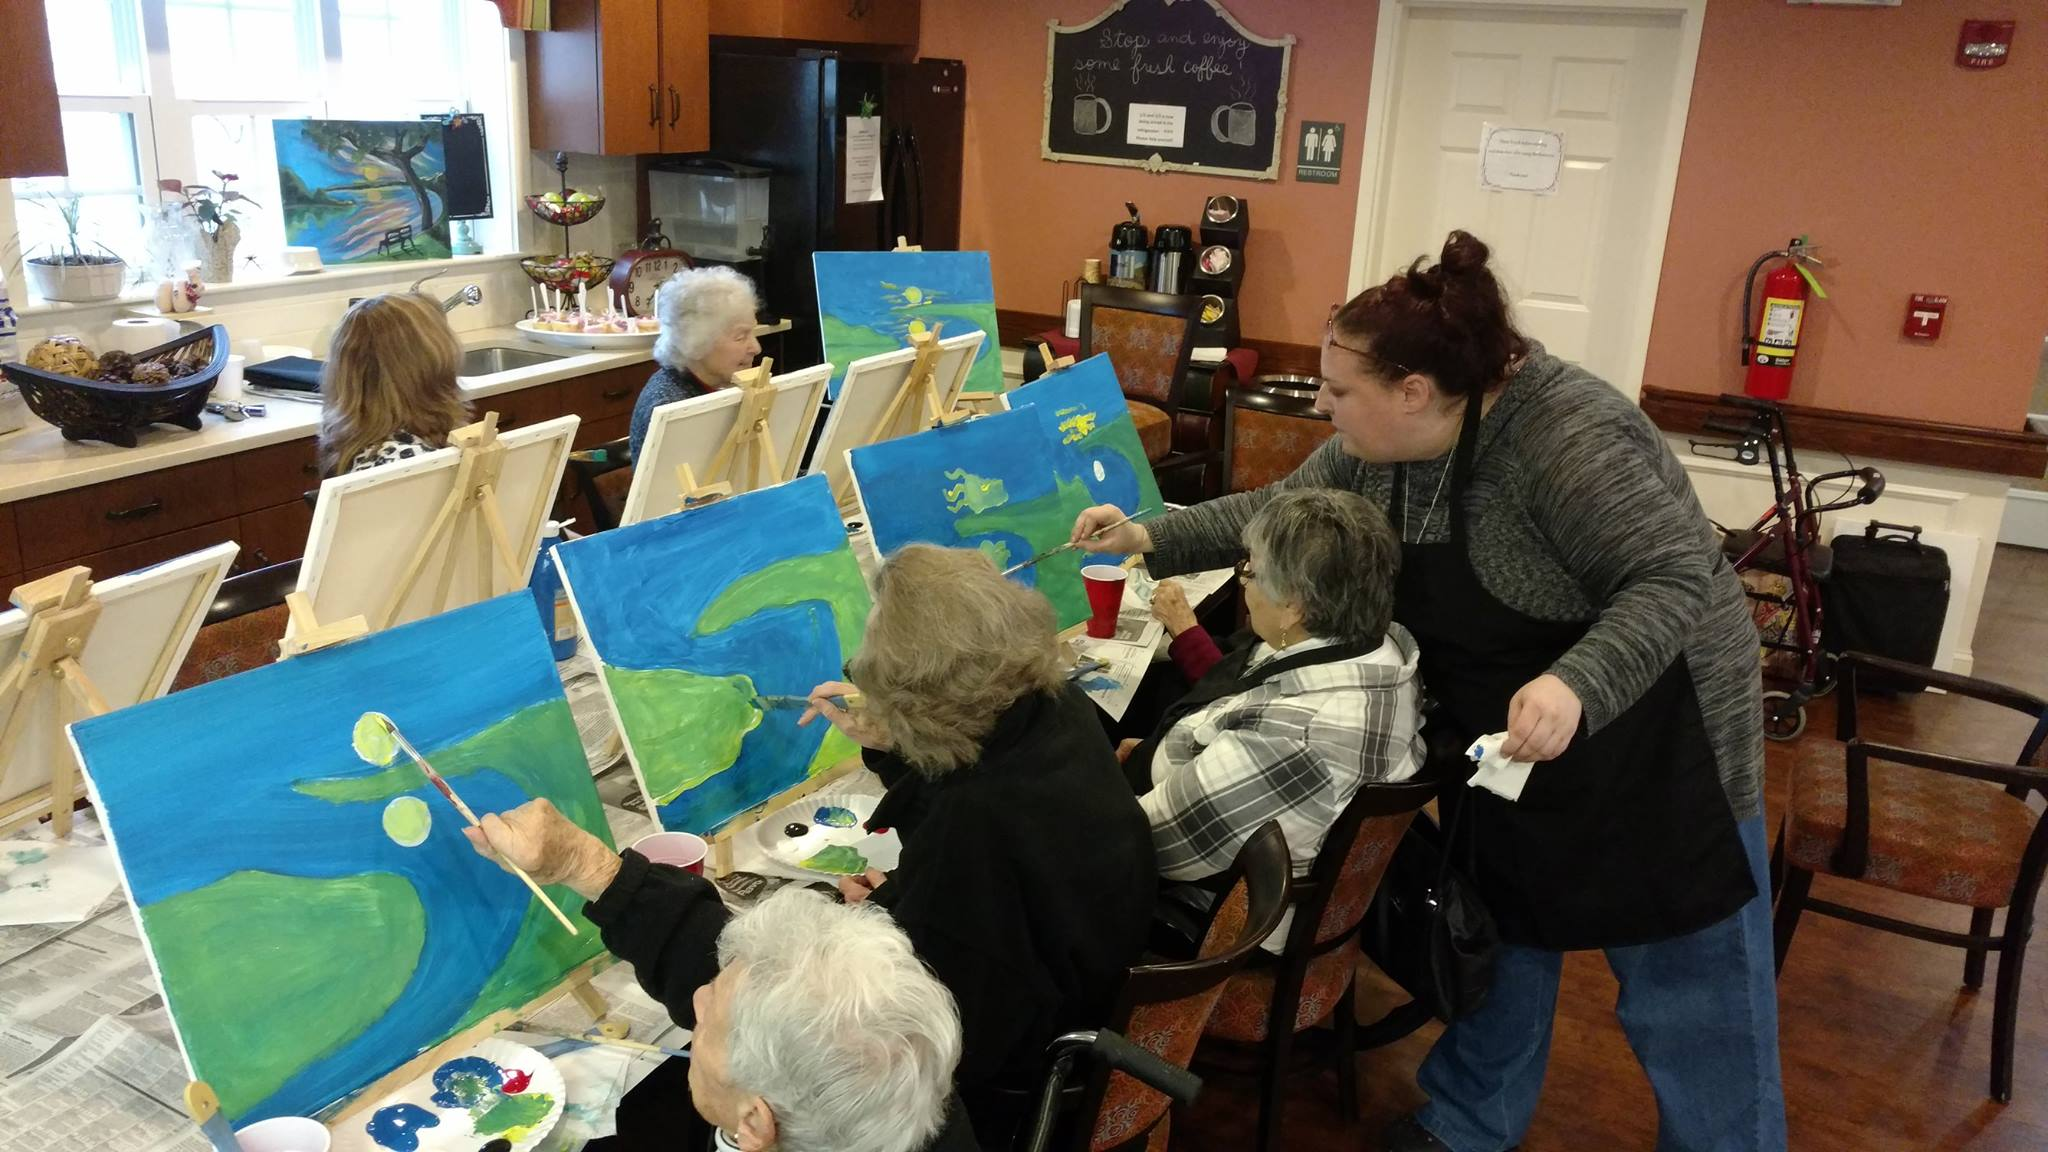 Painting Class at Middlewoods of Newington